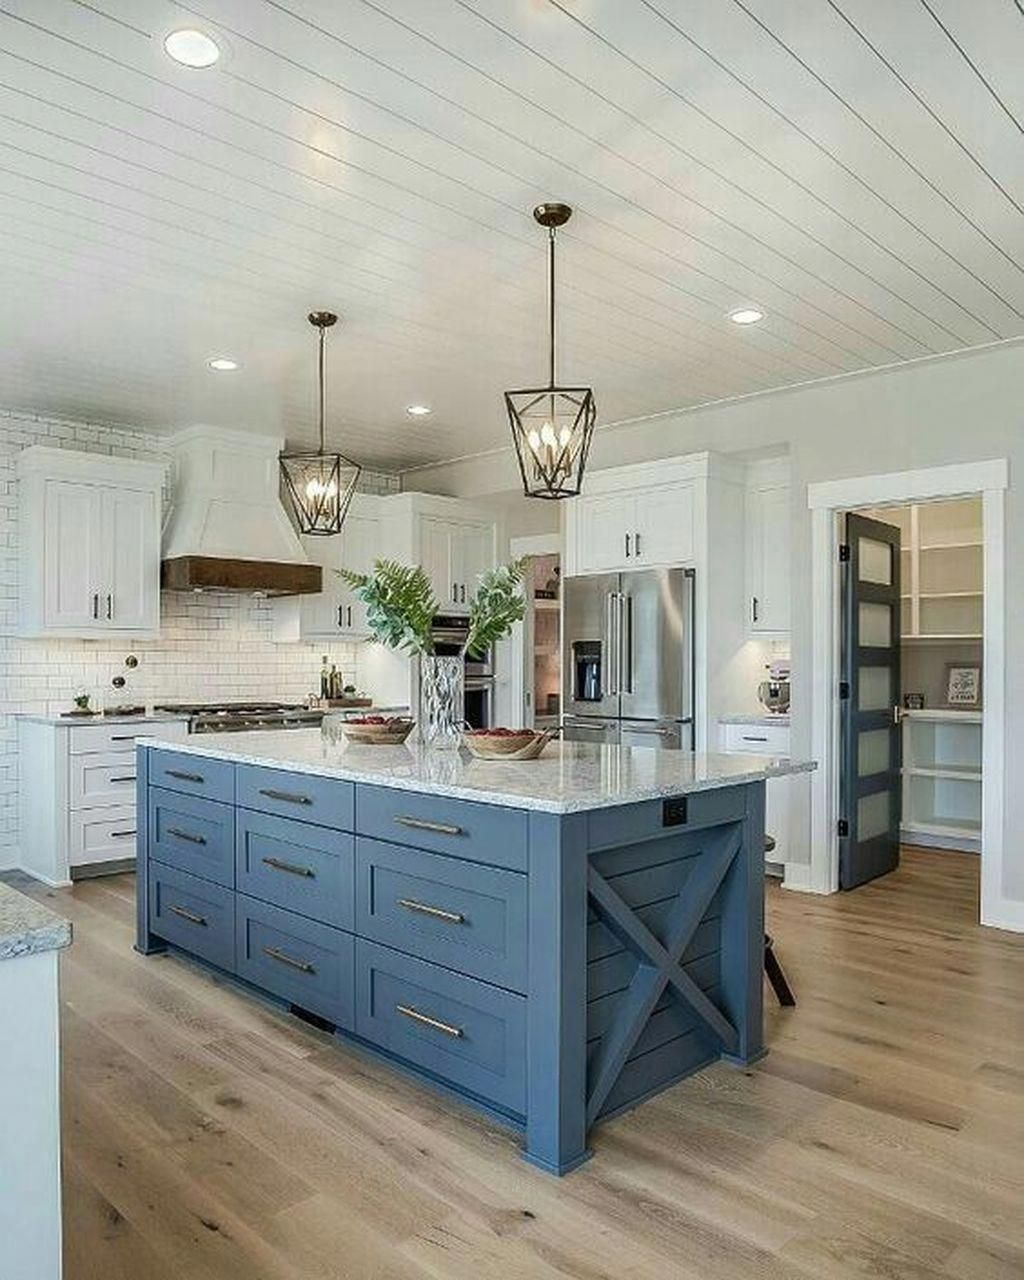 50 Kitchen Island Design Ideas with Marble Countertops #kitchenlayout